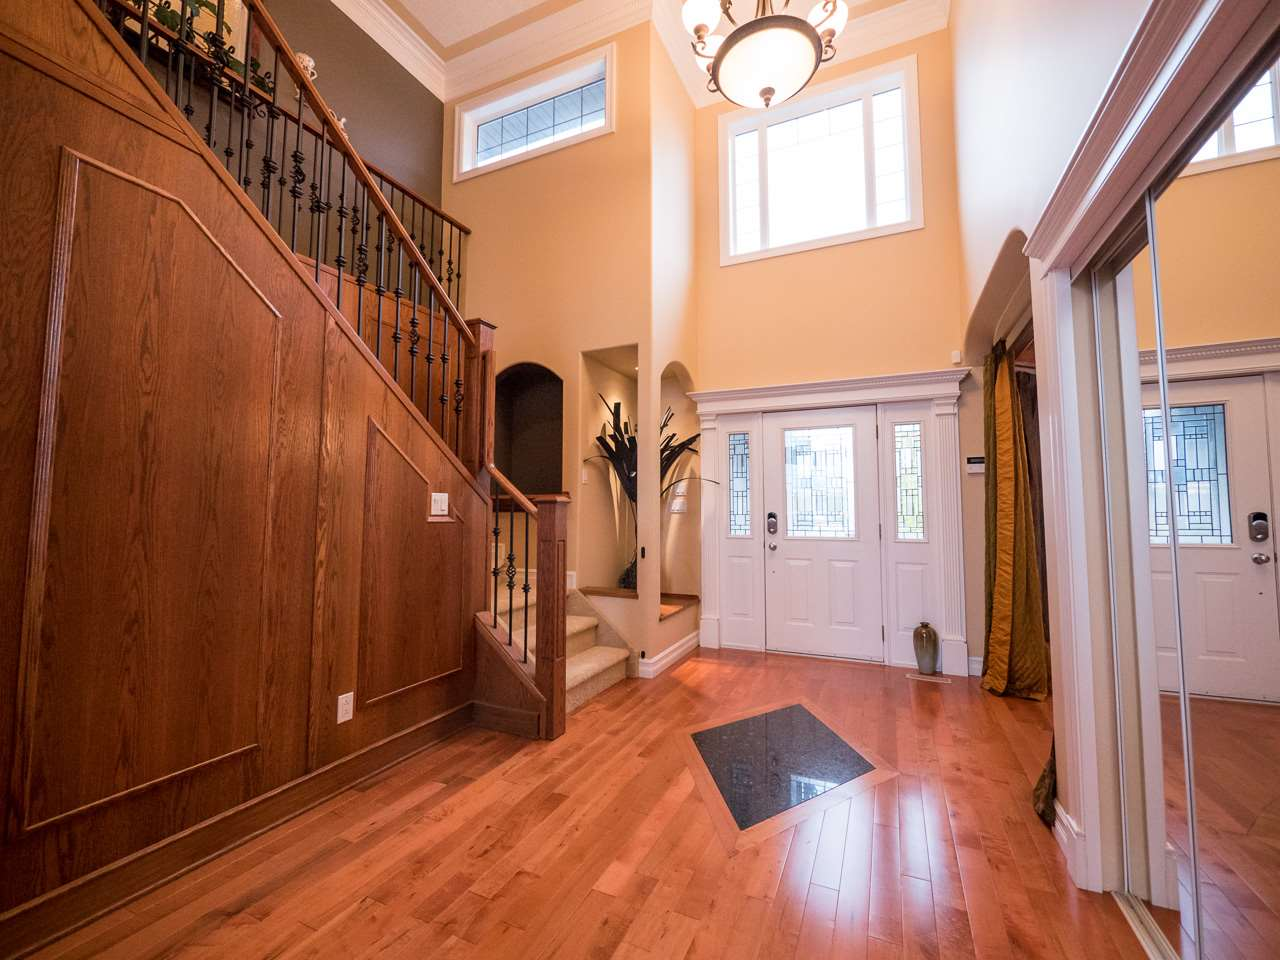 Spacious two storey foyer leads to the open concept main floor and upper level loft.